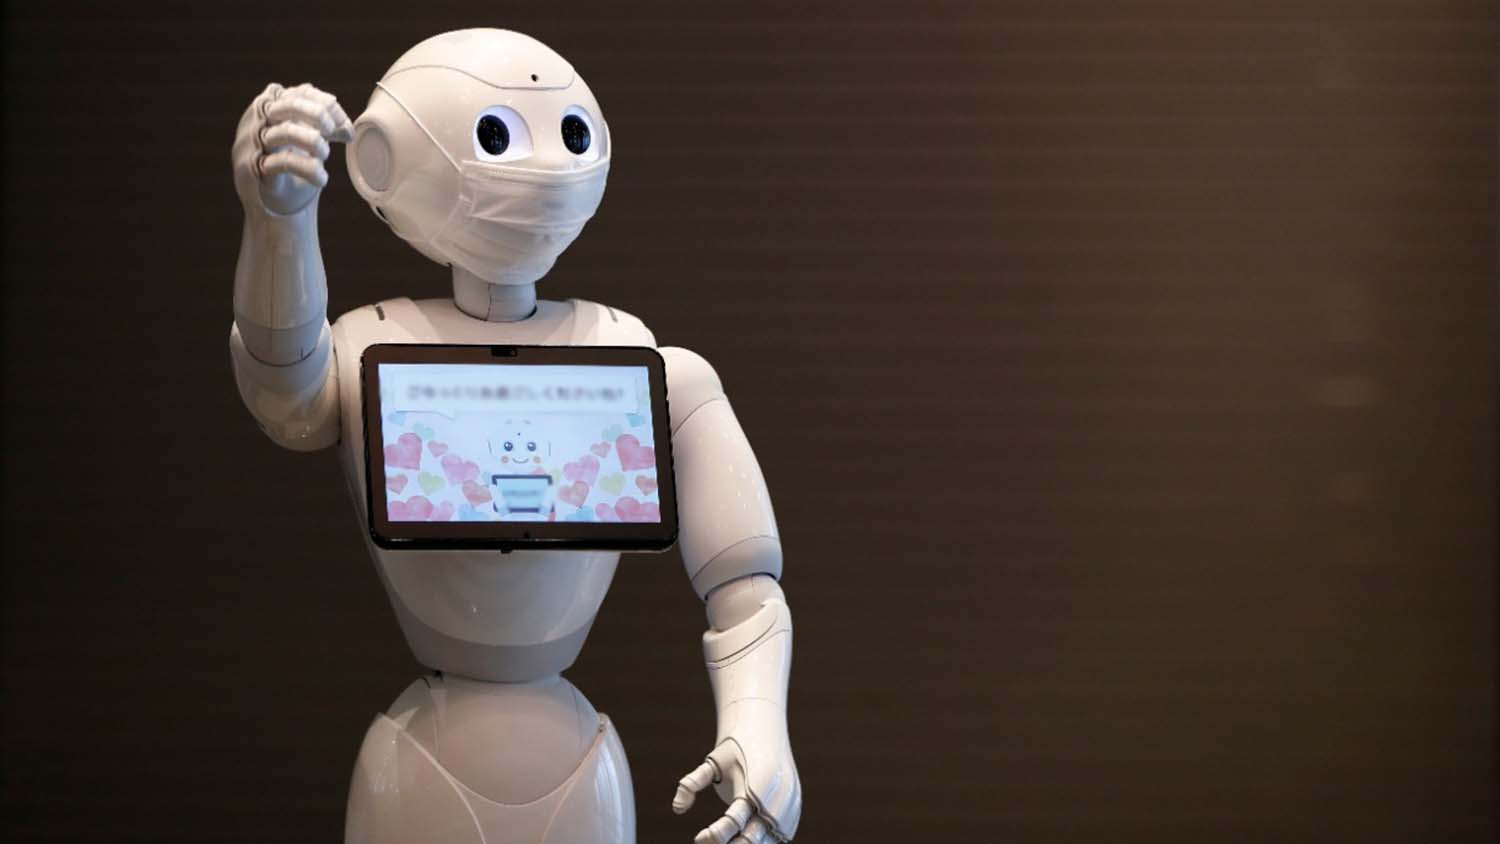 humanoid robot with touchscreen interface